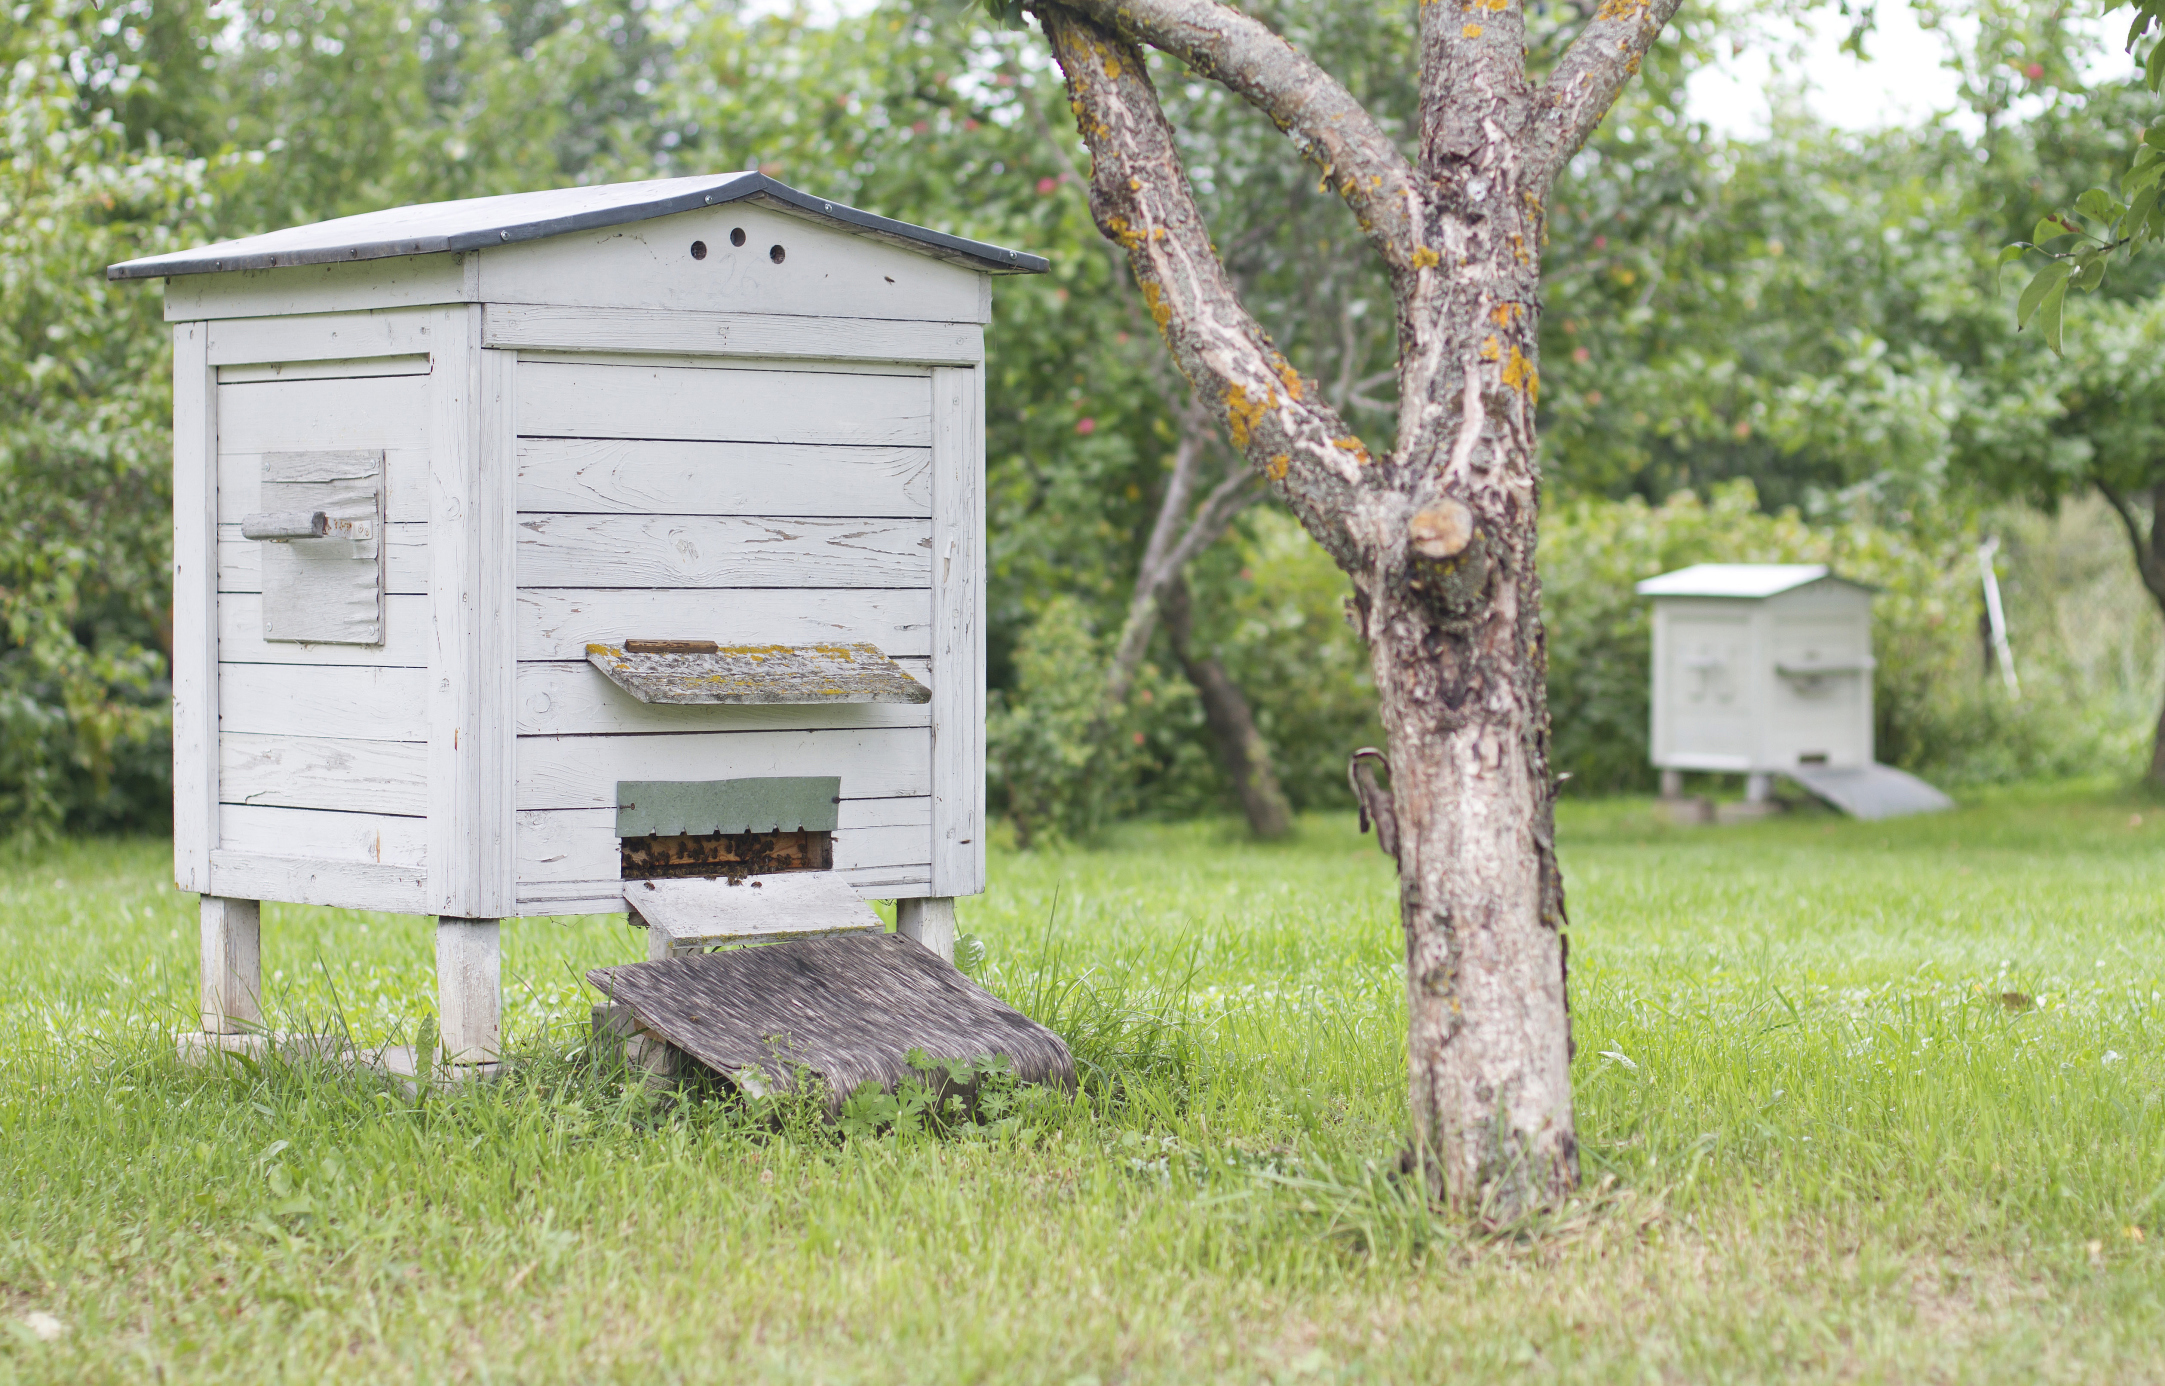 Six beehives were stolen from an orchard.